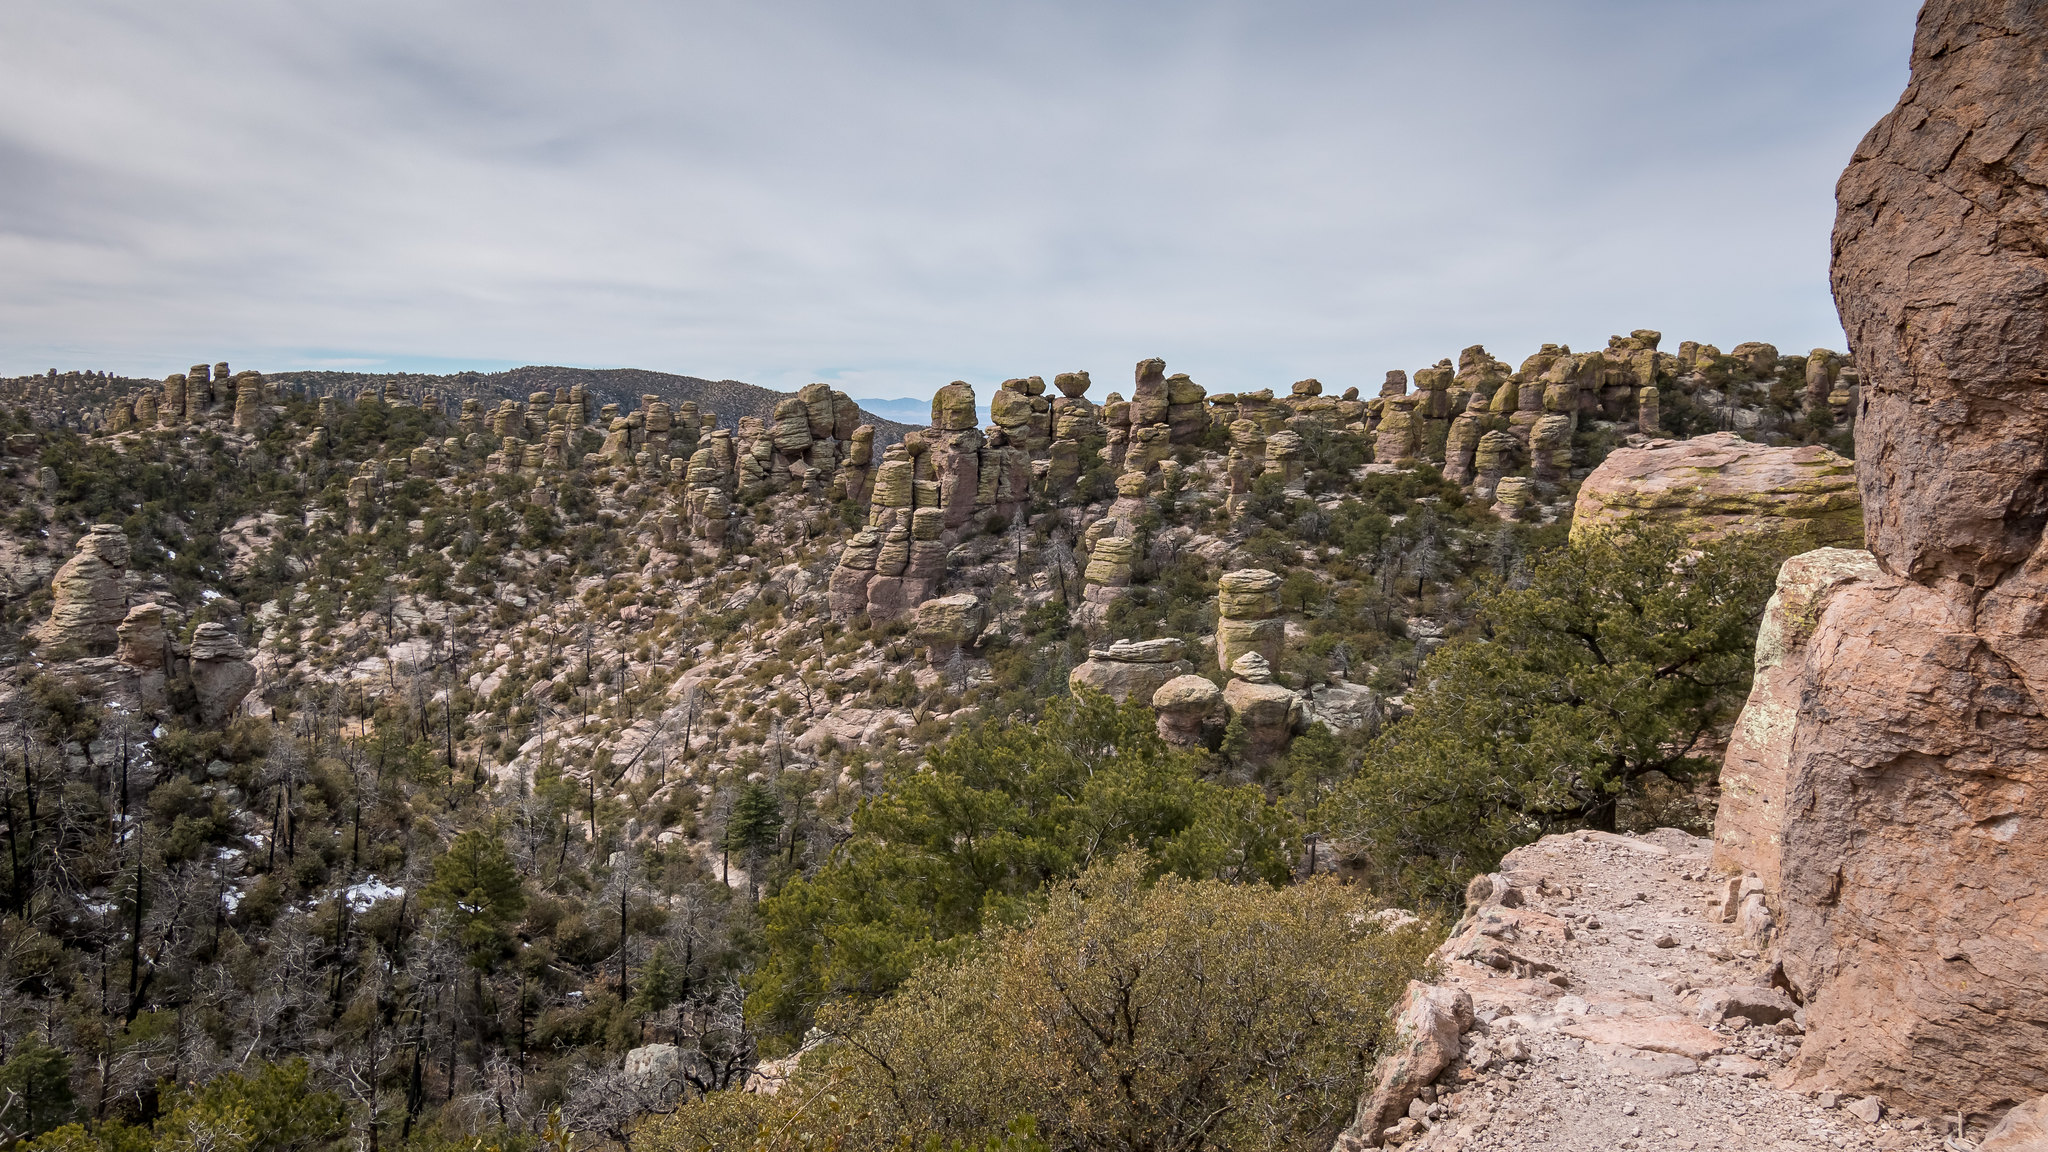 Chiricahua - Arizona - [USA]